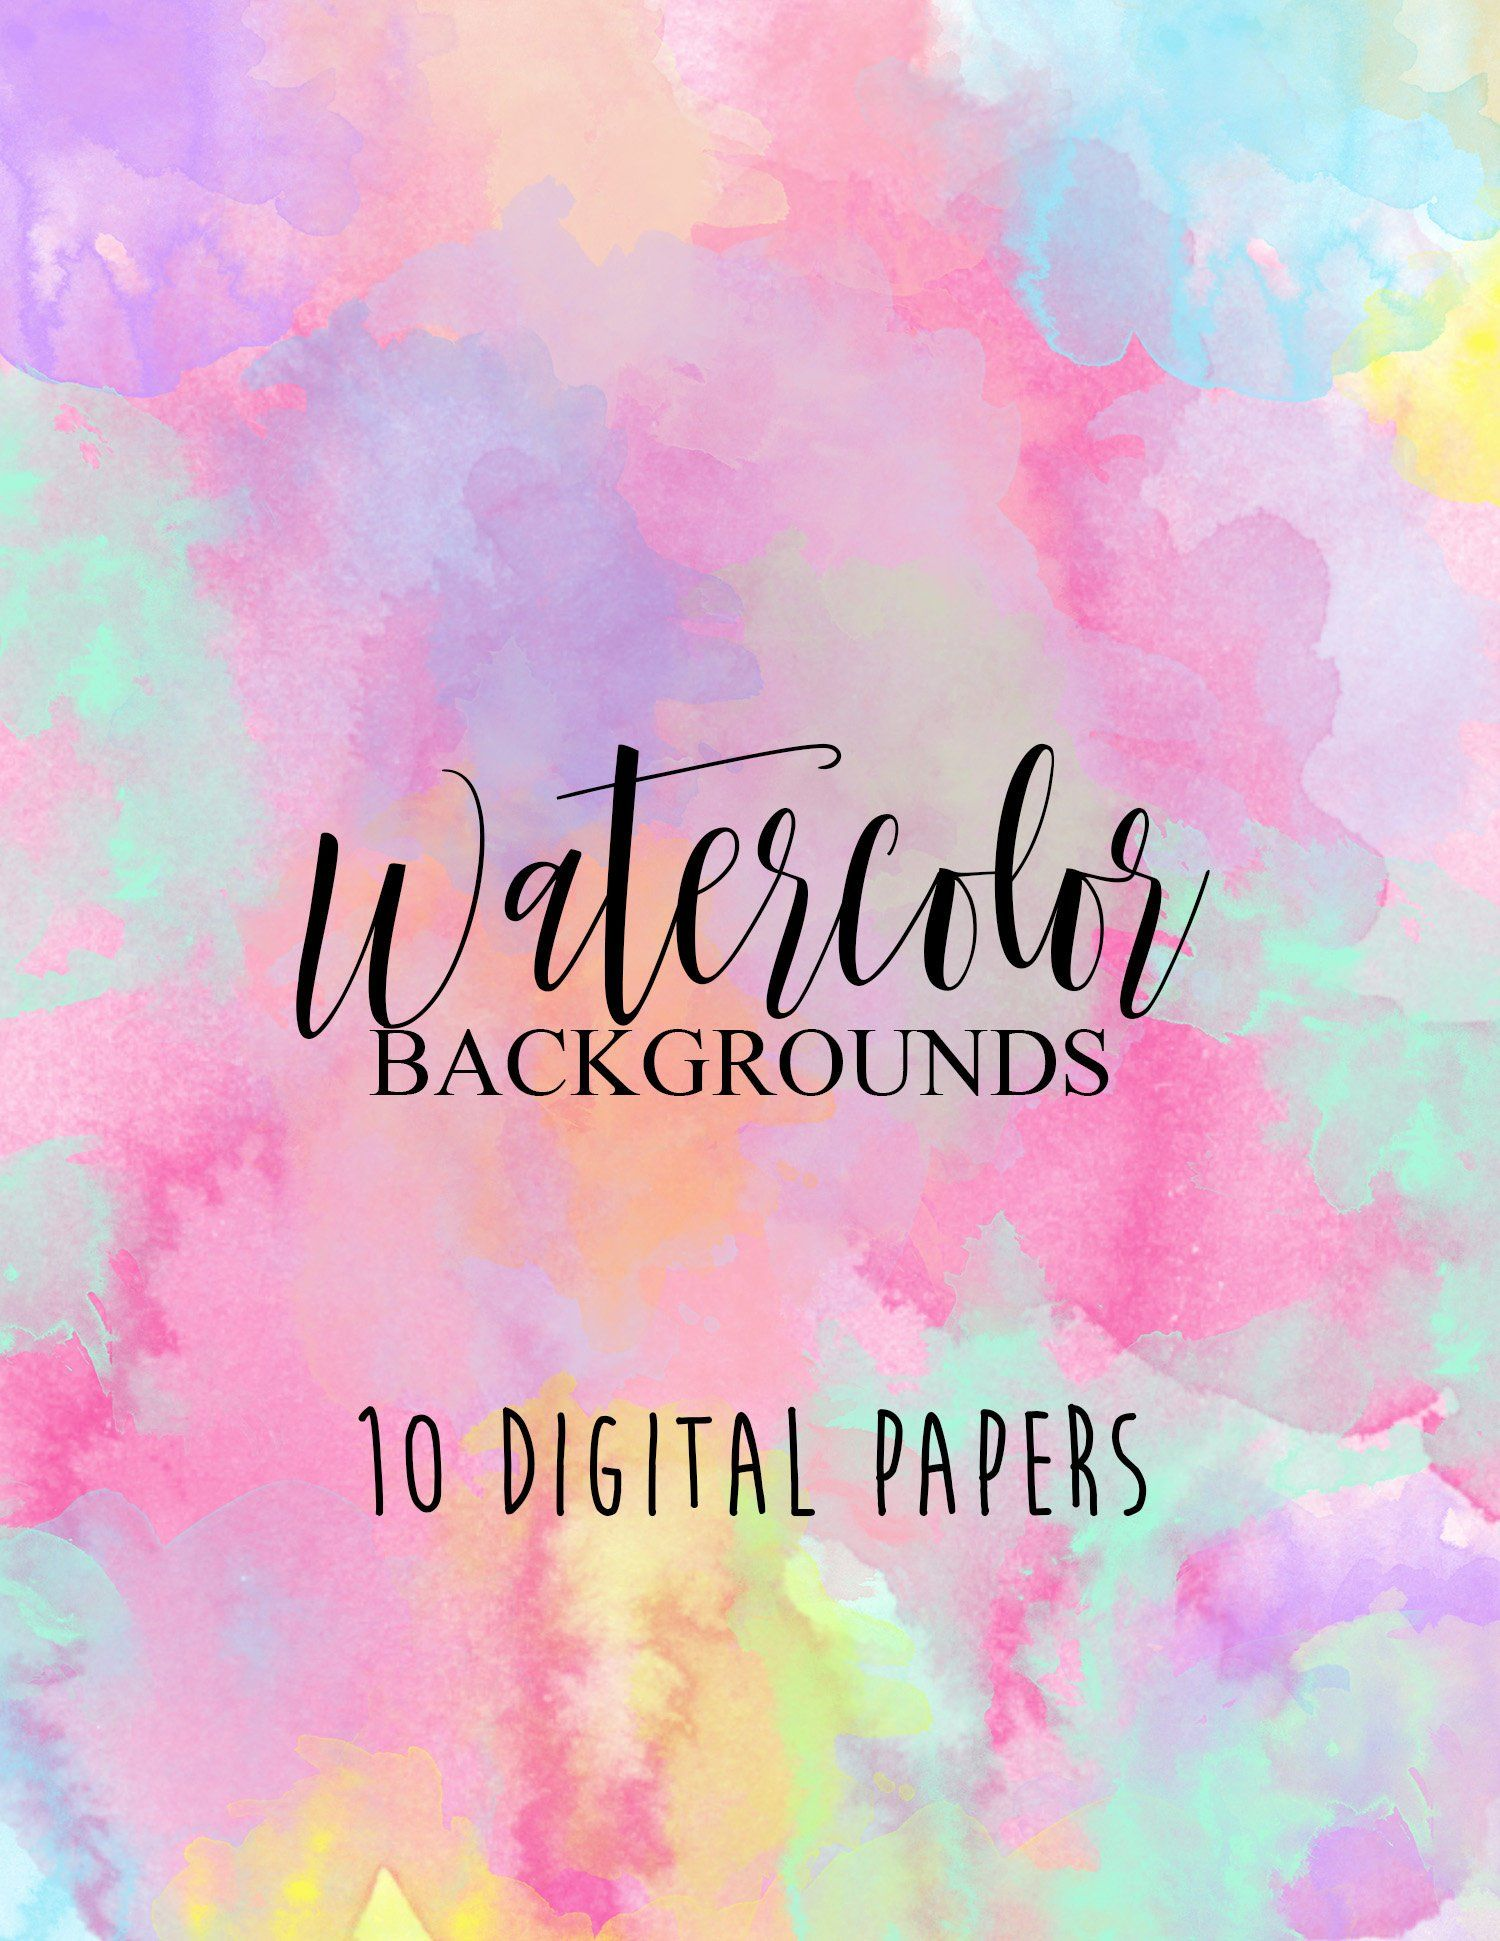 Watercolor Background Clipart 7 Pink And Purple Watercolor Brush